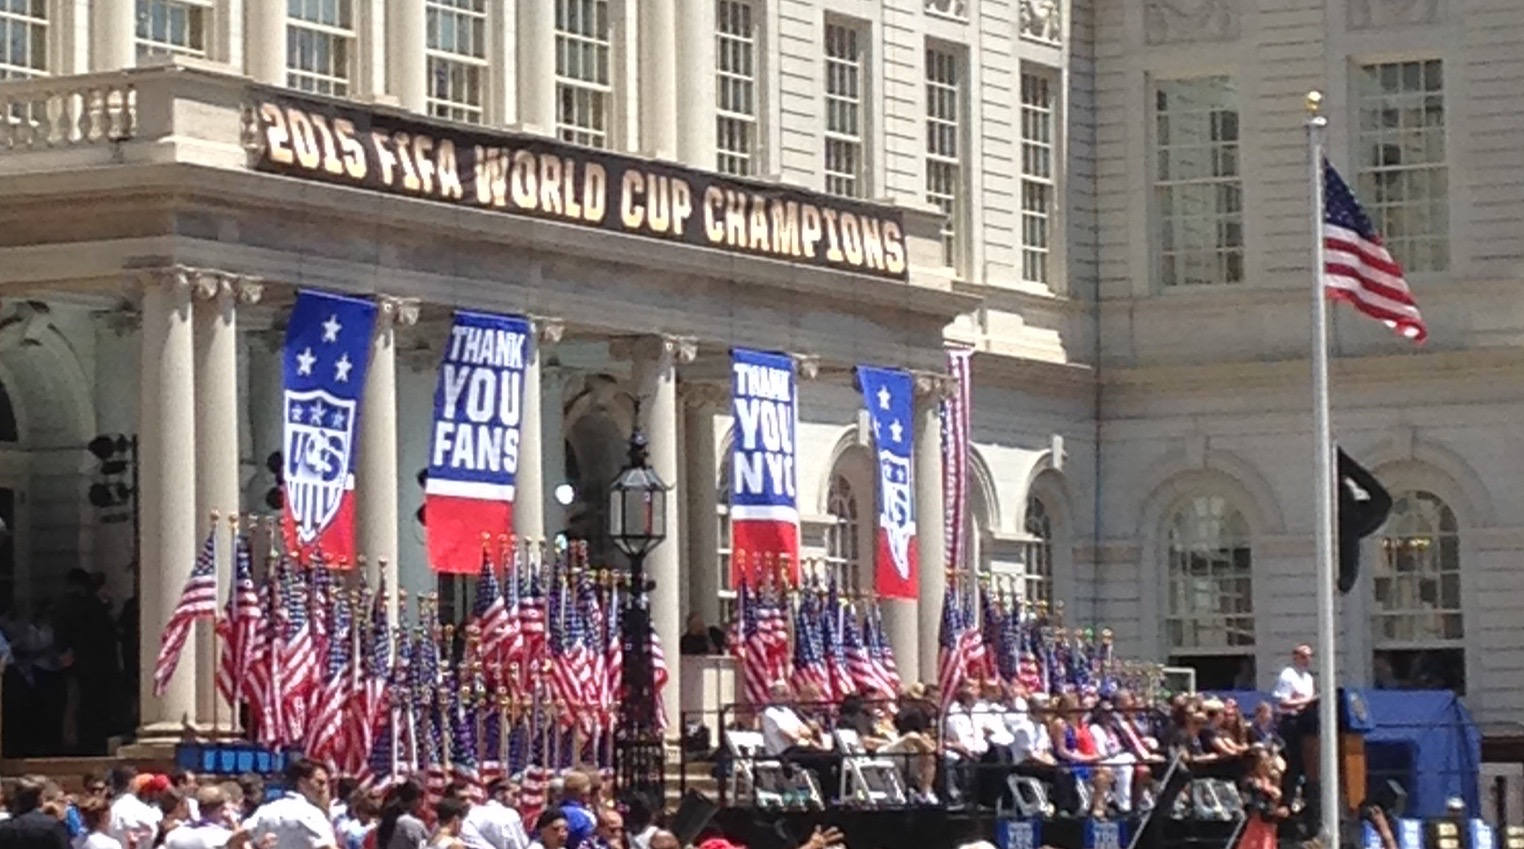 Cheers To Governor Brewer >> Totem Tamers congratulates the 2015 FIFA World Cup Champs: the U.S. Women's Soccer Team ...